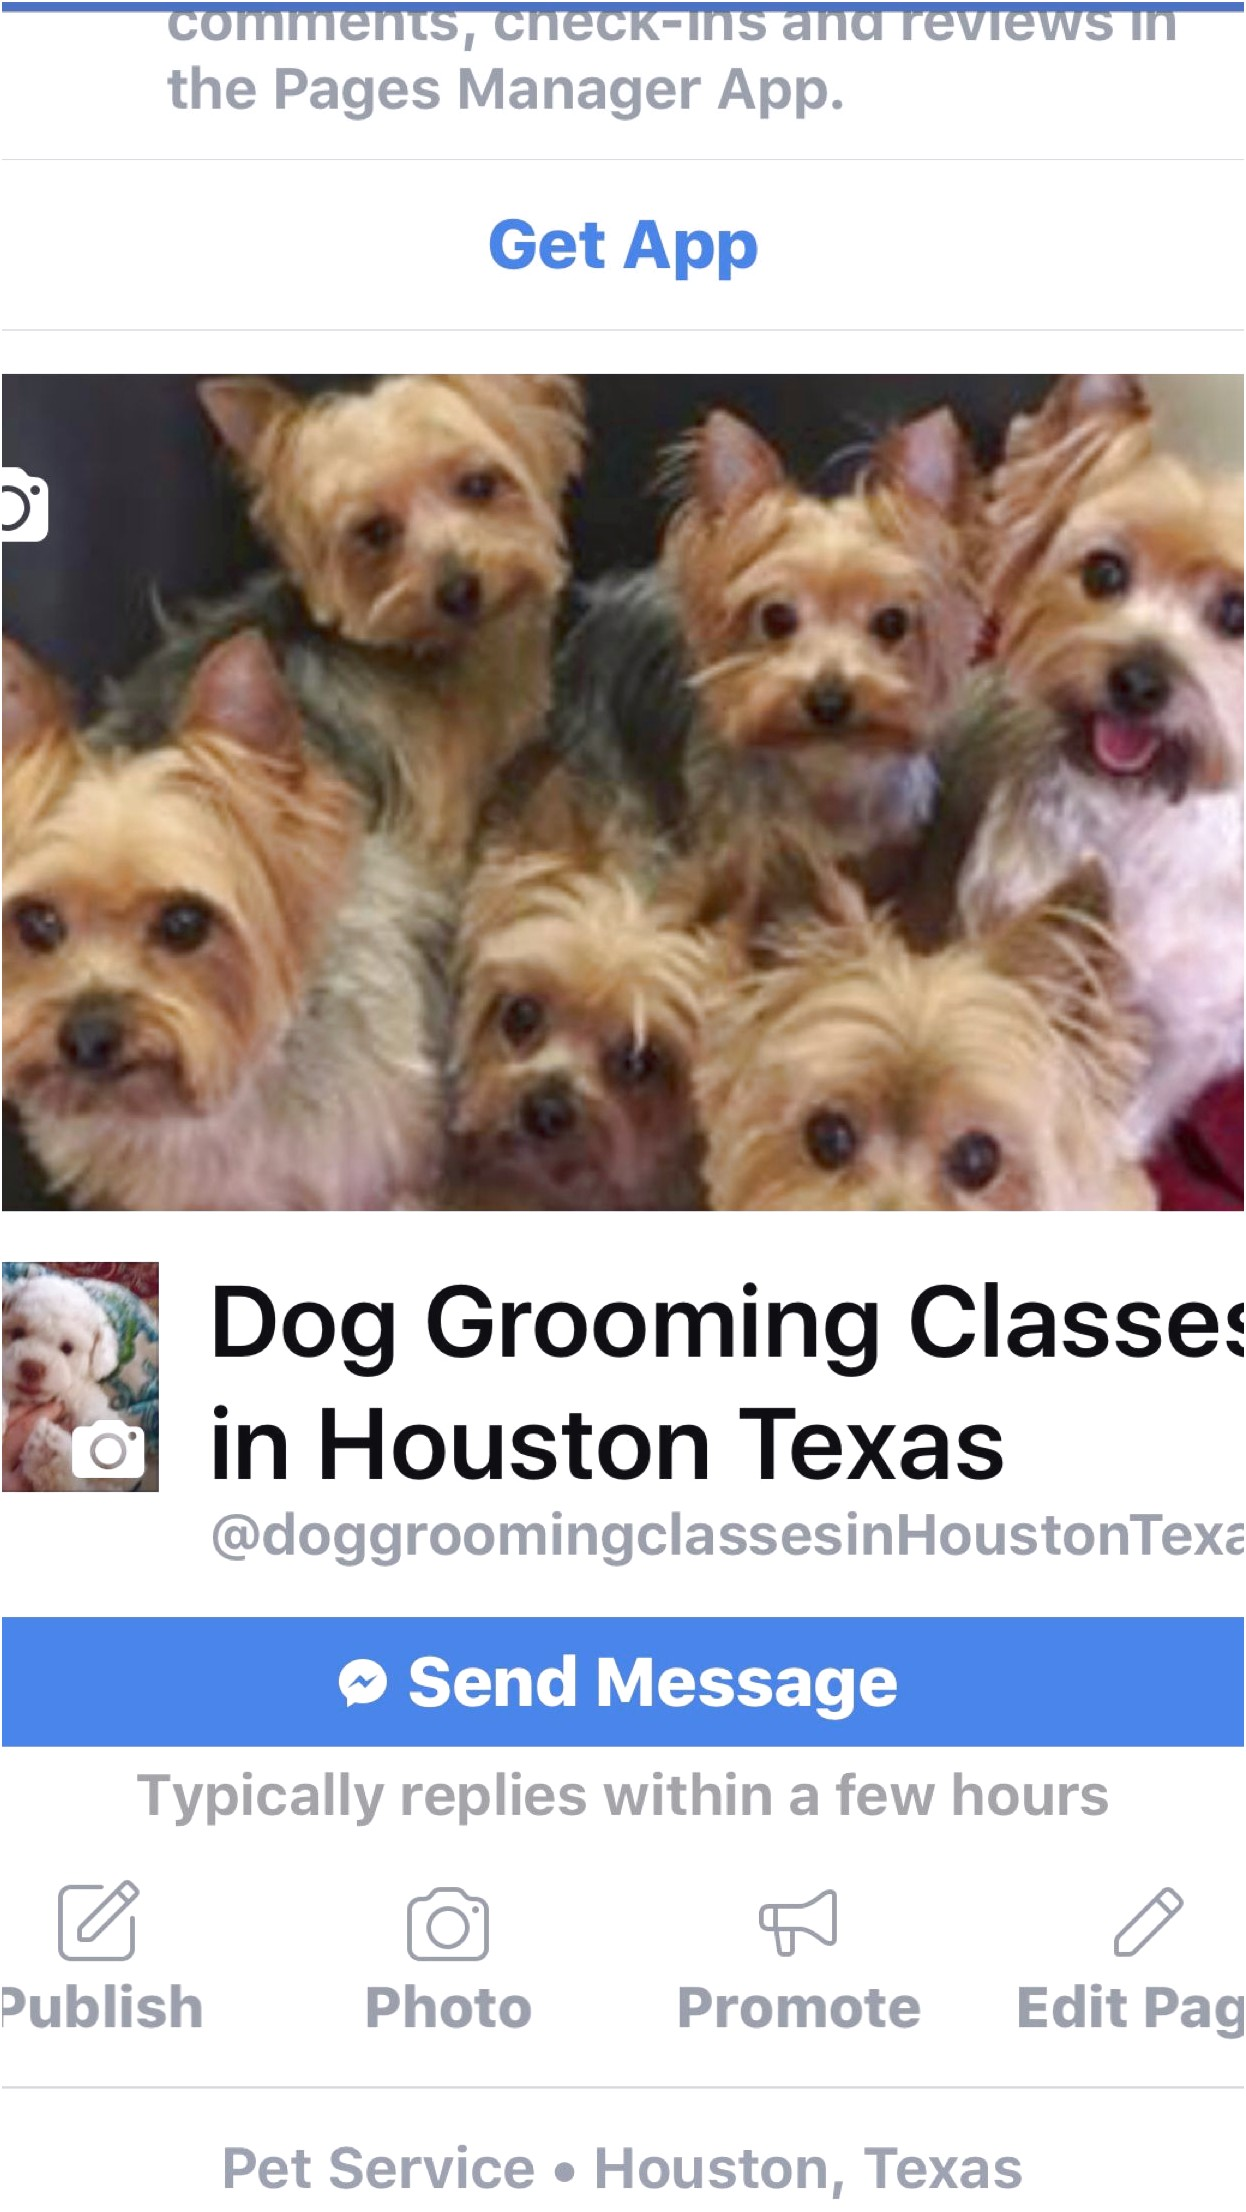 Dog Grooming Classes